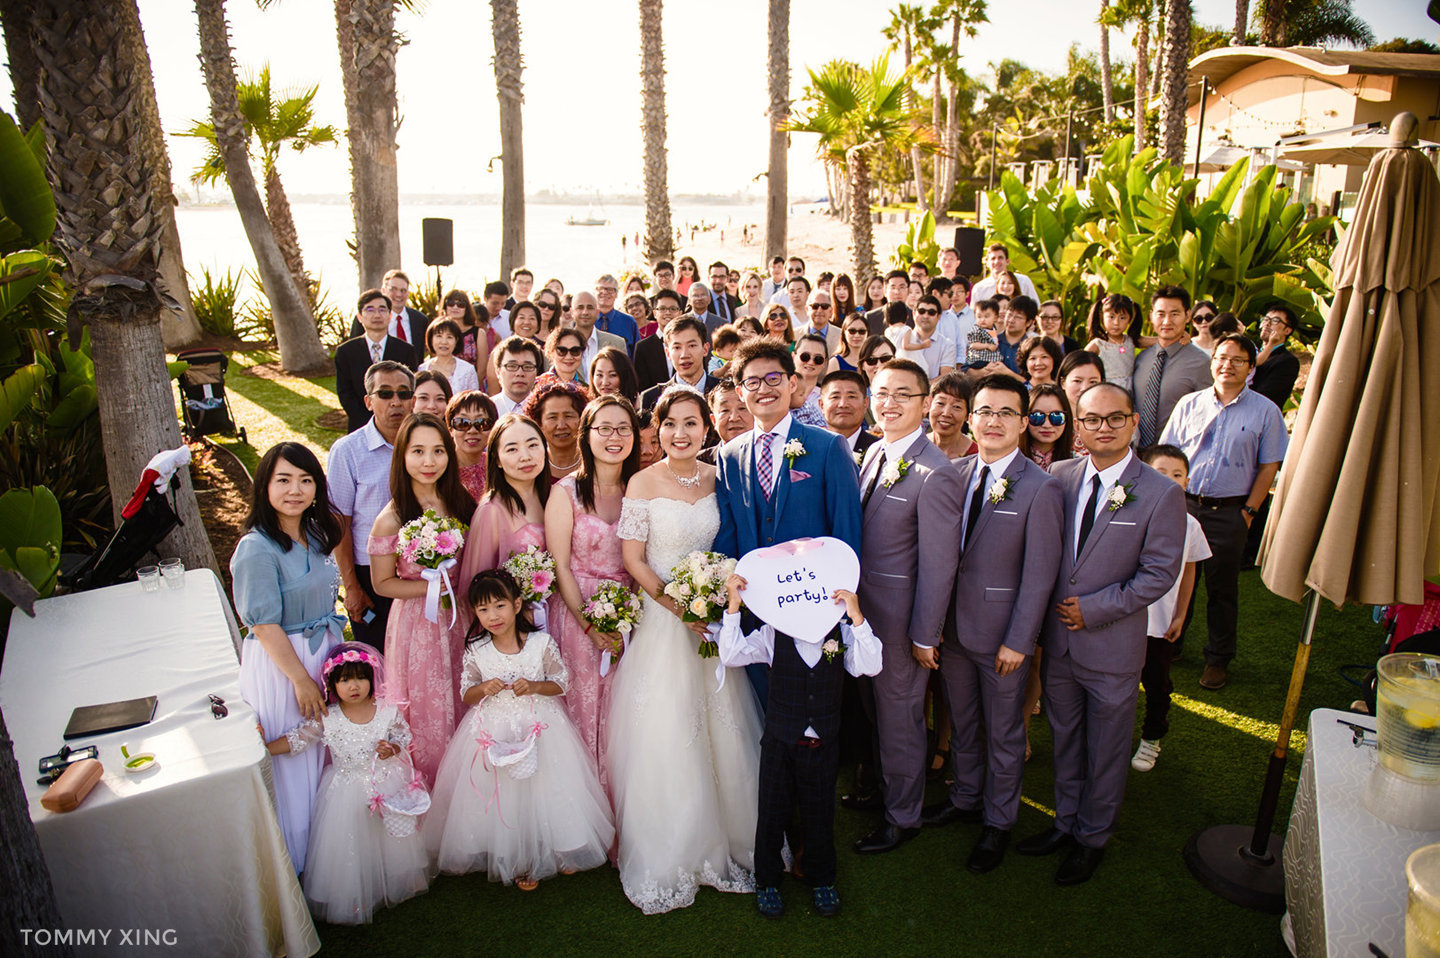 Paradise Point Resort Wedding Xiaolu & Bin San Diego 圣地亚哥婚礼摄影跟拍 Tommy Xing Photography 洛杉矶婚礼婚纱照摄影师 185.jpg